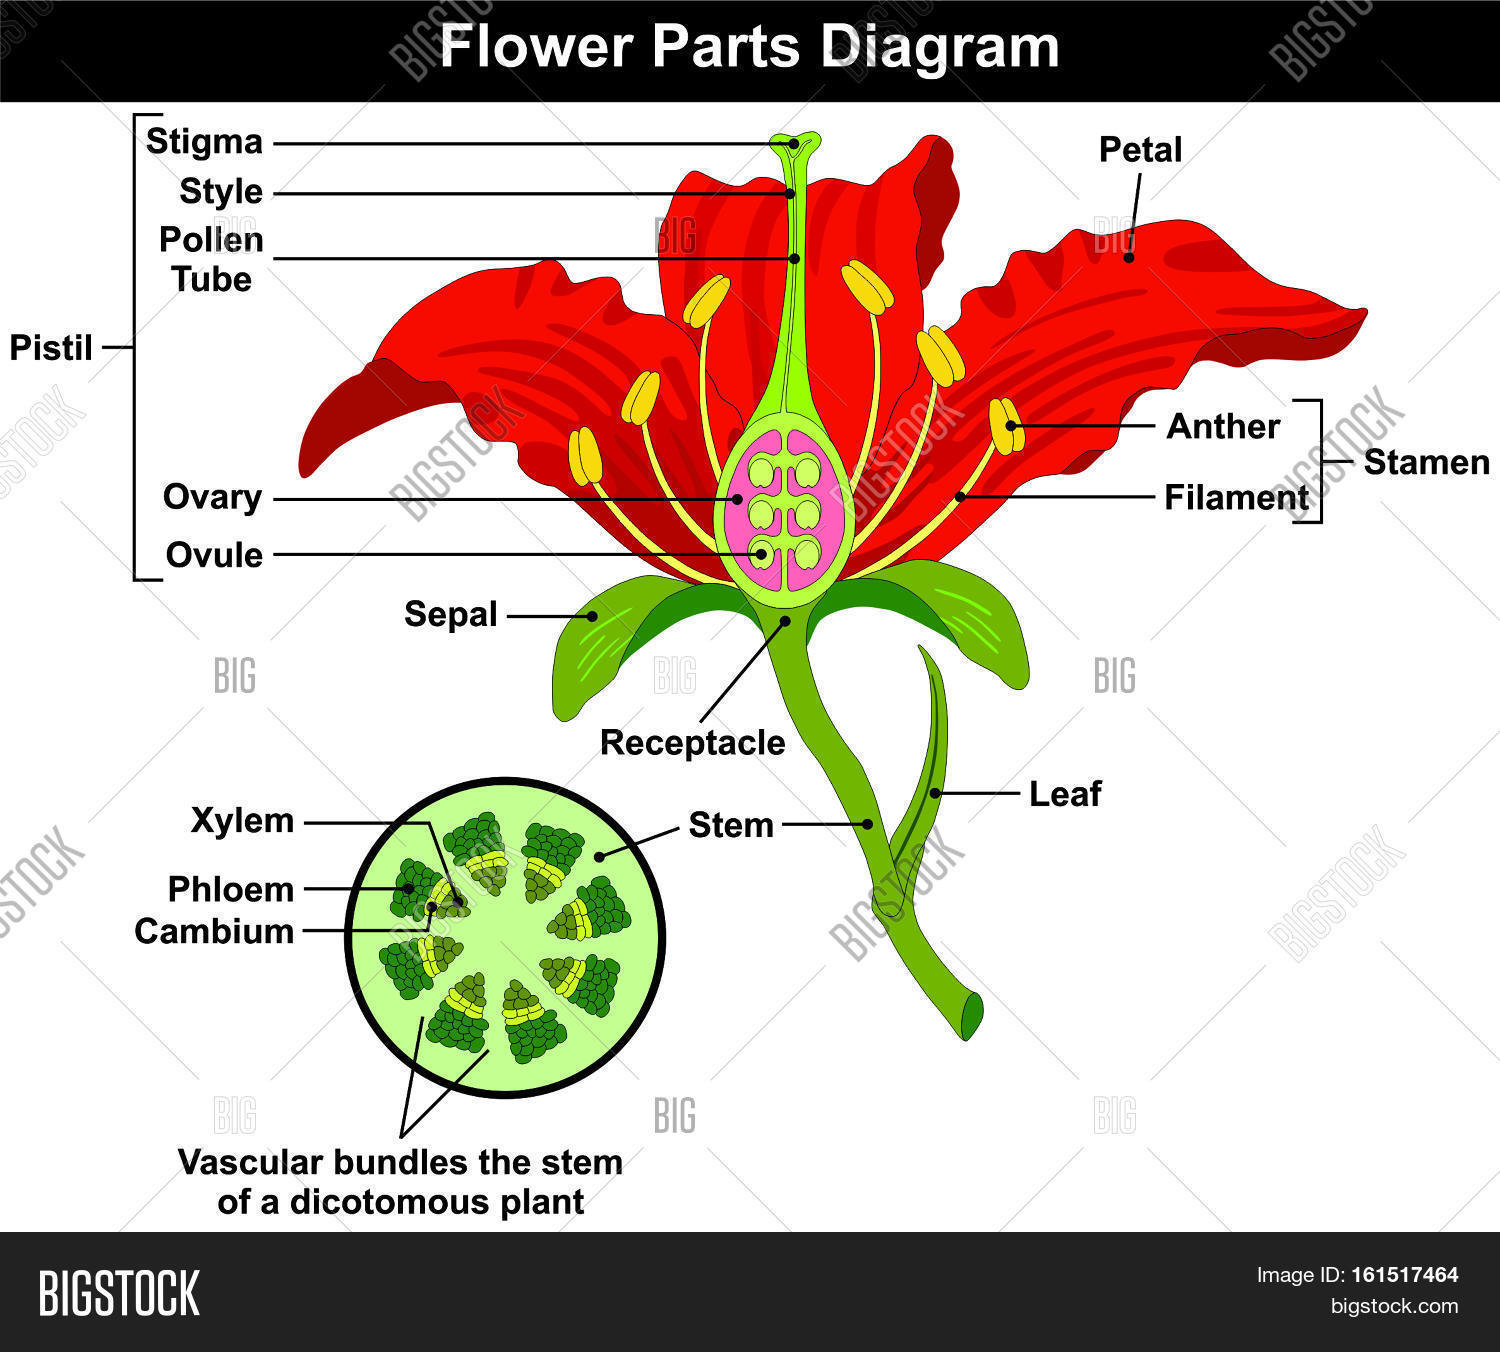 how to draw stem and leaf diagram 2000 gmc sierra stereo wiring flower parts cross image photo bigstock